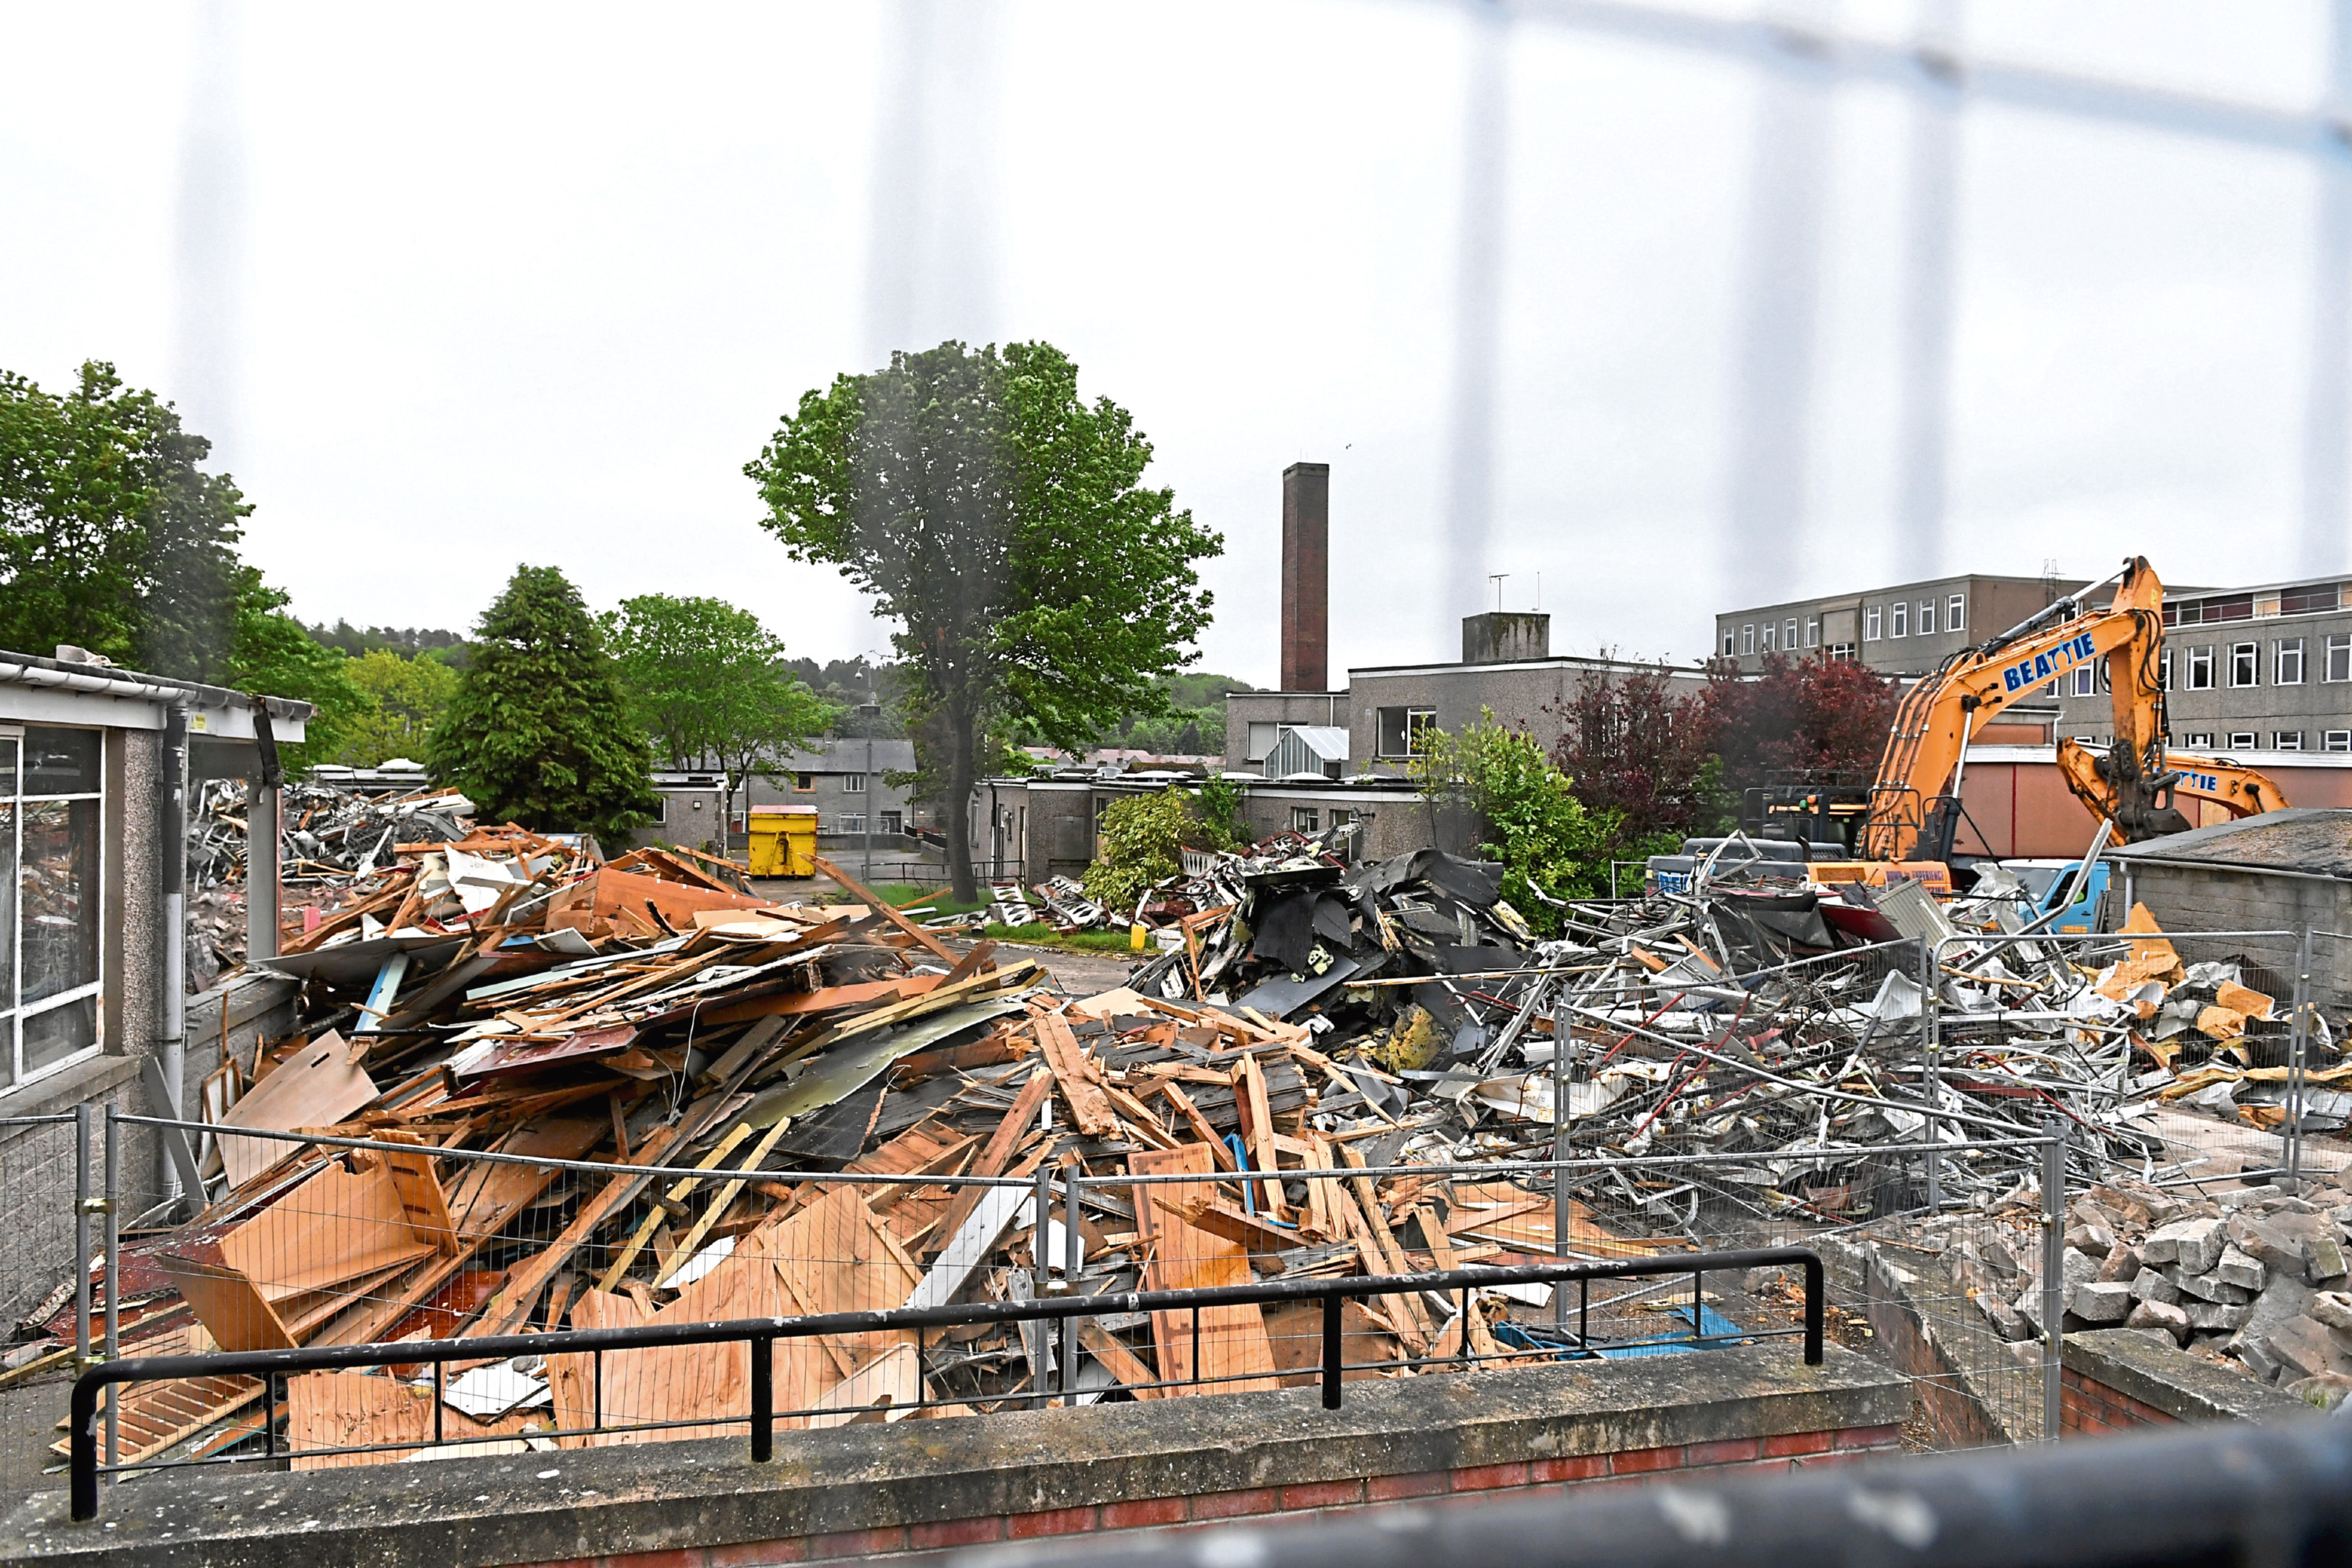 Kincorth Academy is being demolished to make way for new houses